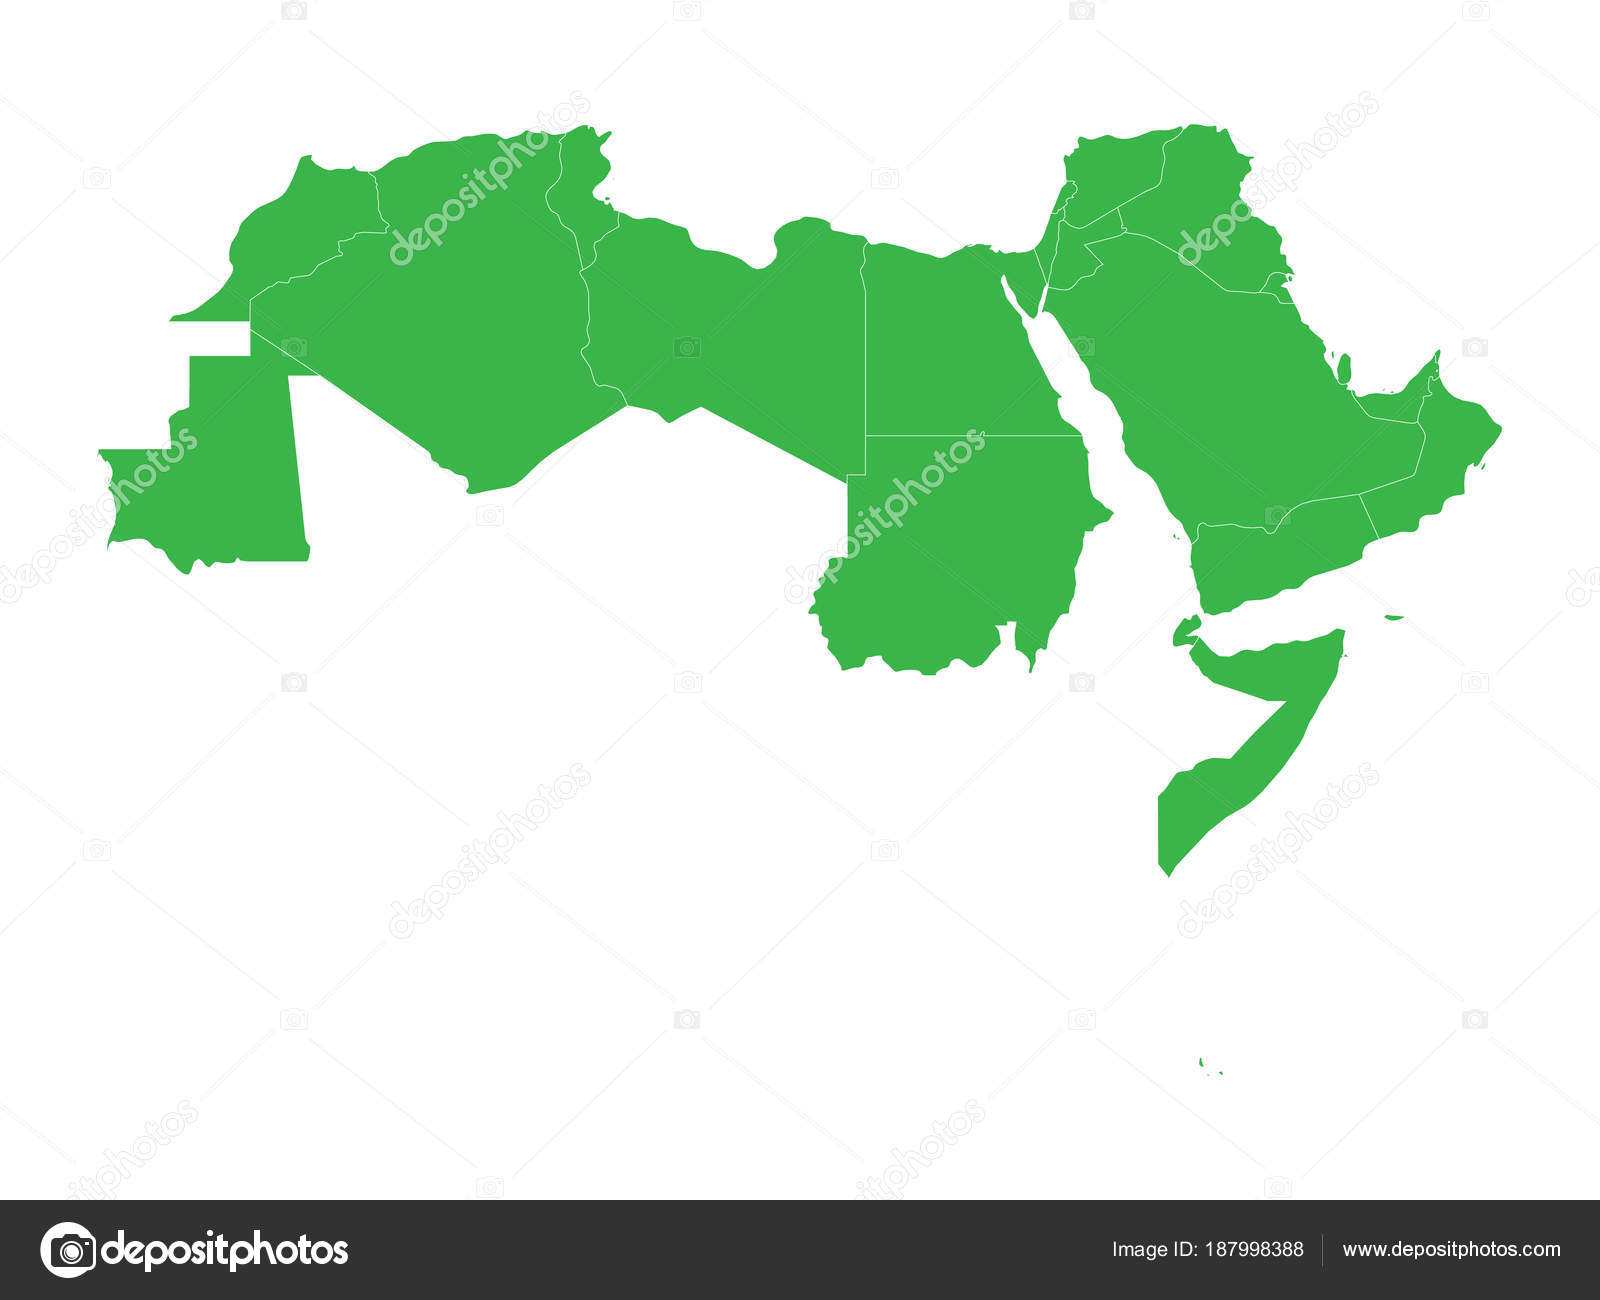 arab world states blank political map of 22 arabic speaking countries of the arab